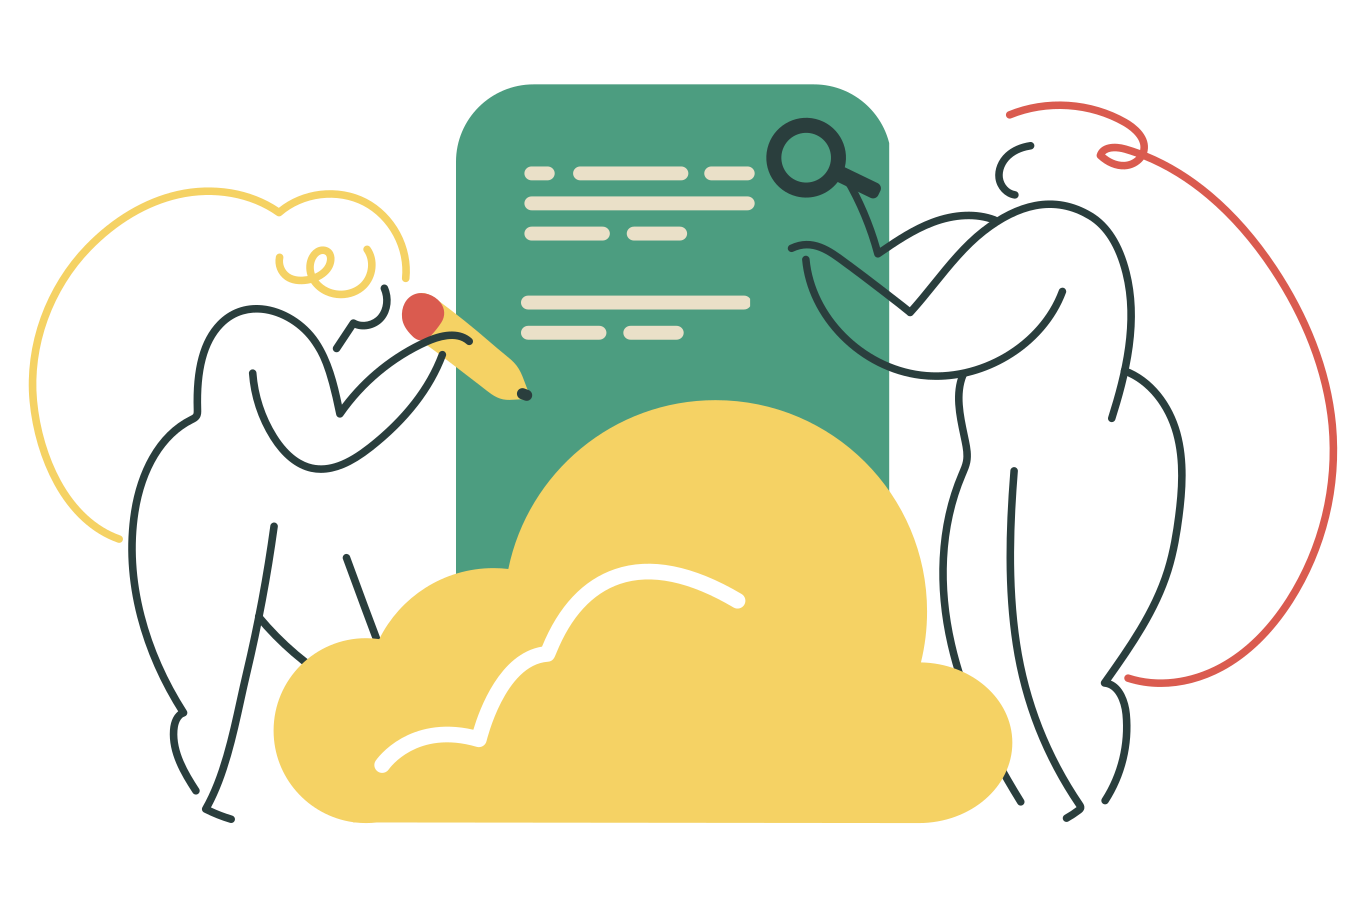 style Cloud collaboration Vector images in PNG and SVG | Icons8 Illustrations